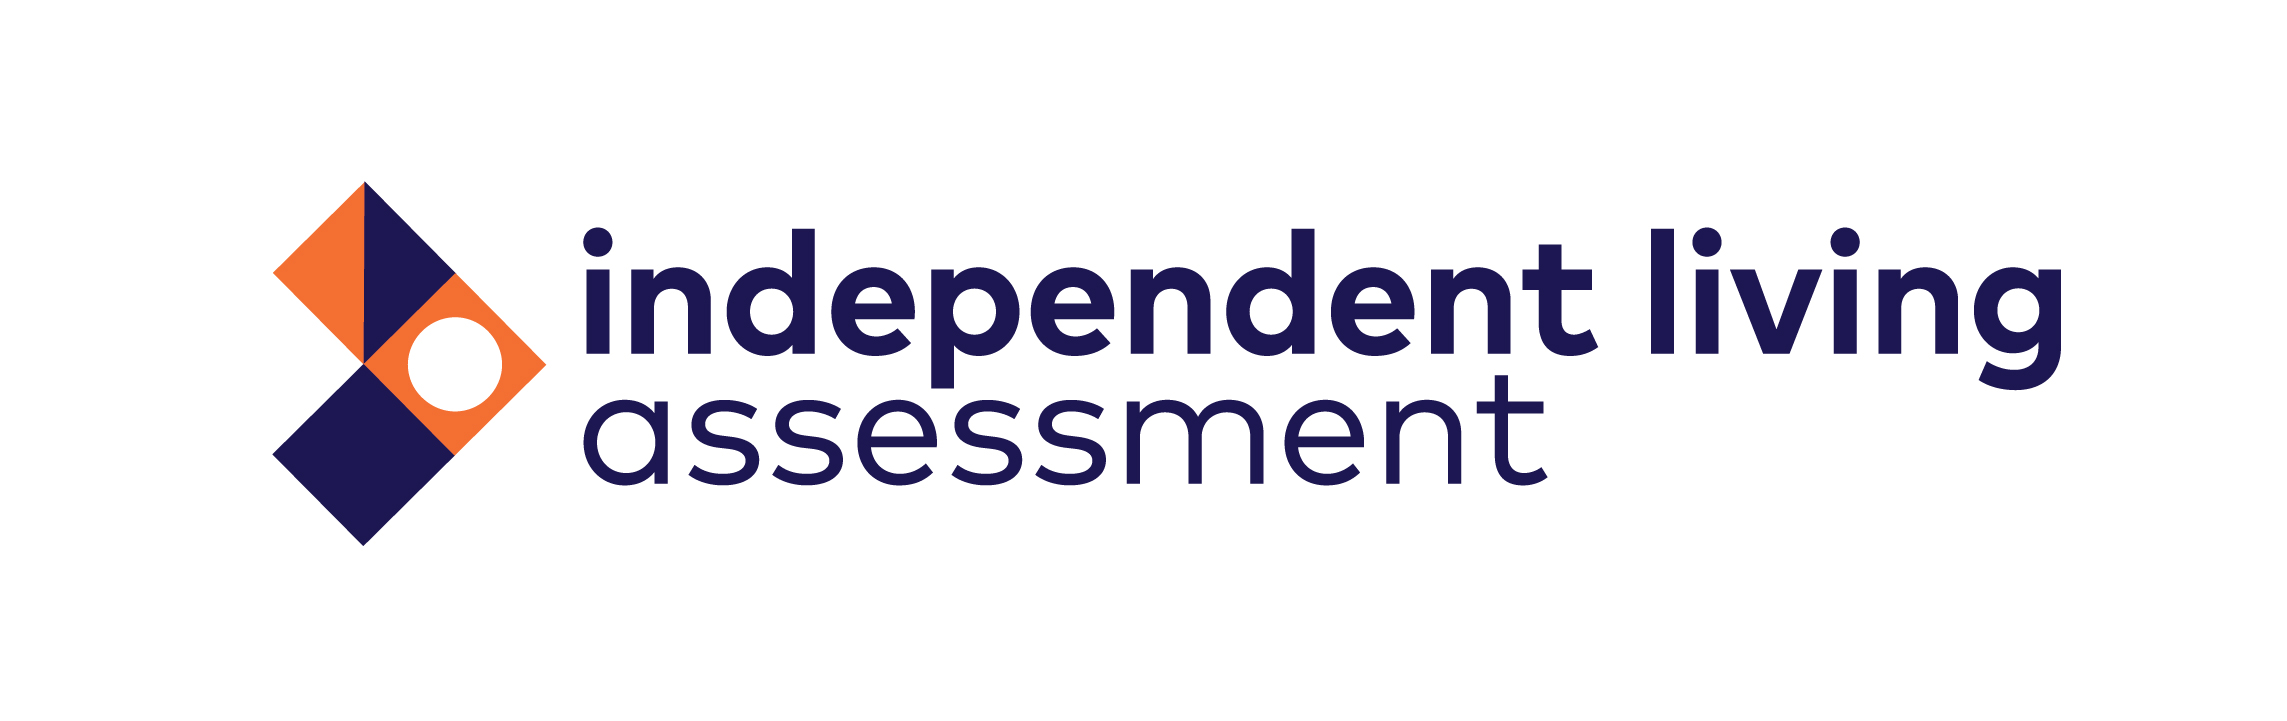 independent living assessment logo in purple with orange and purple squares next to it